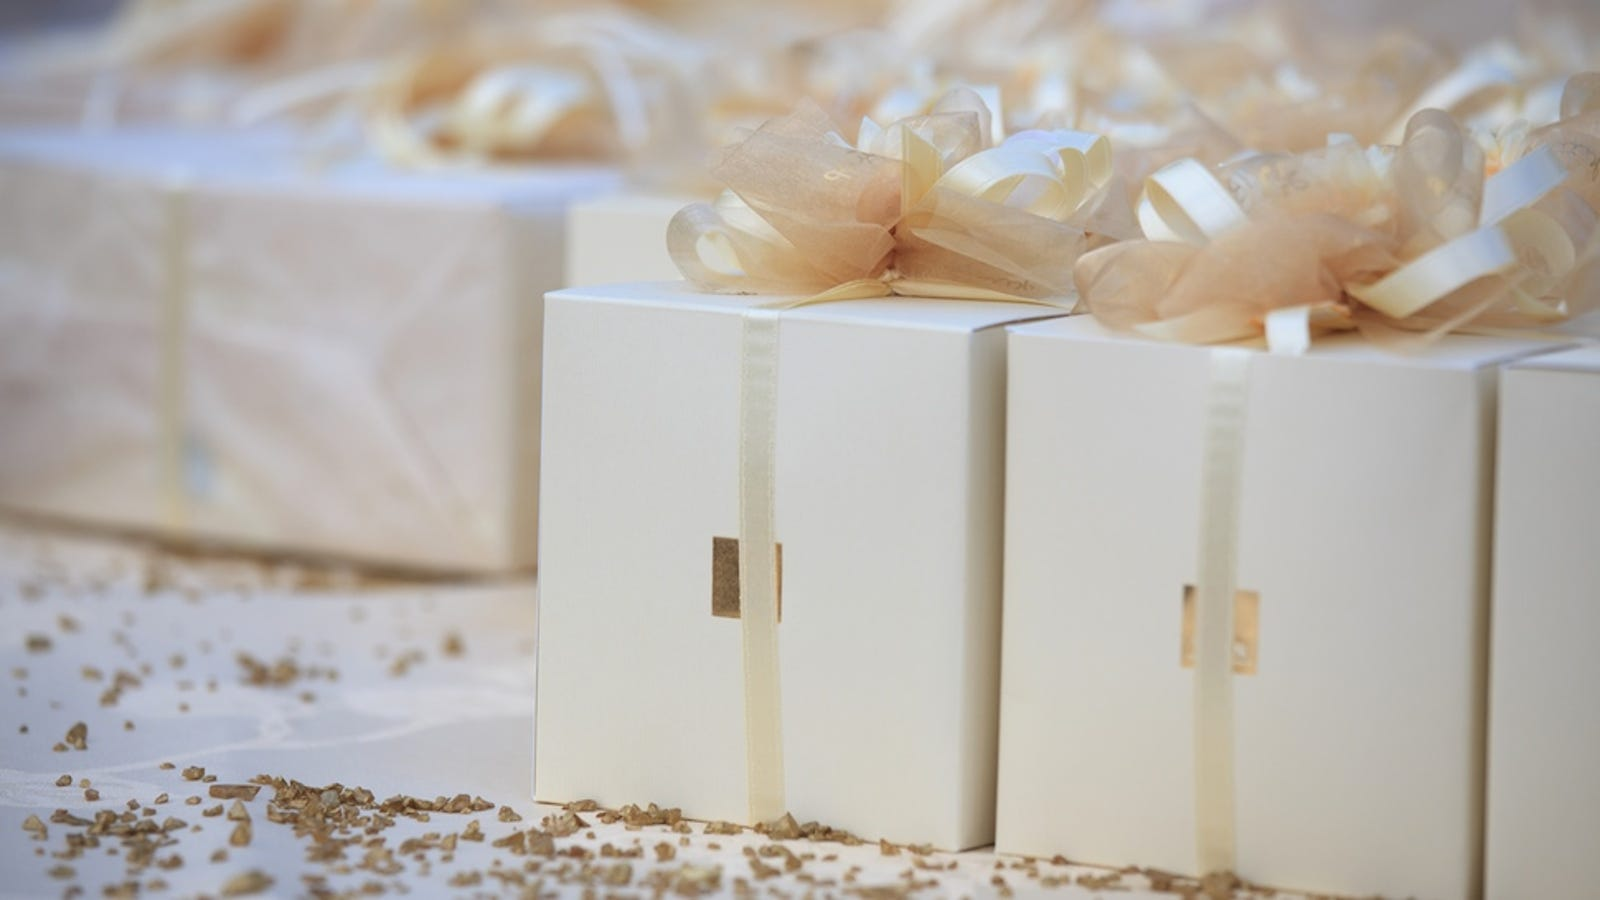 Asking For Money For Wedding Gift: The Dangerous Art Of Asking For Money As A Wedding Gift